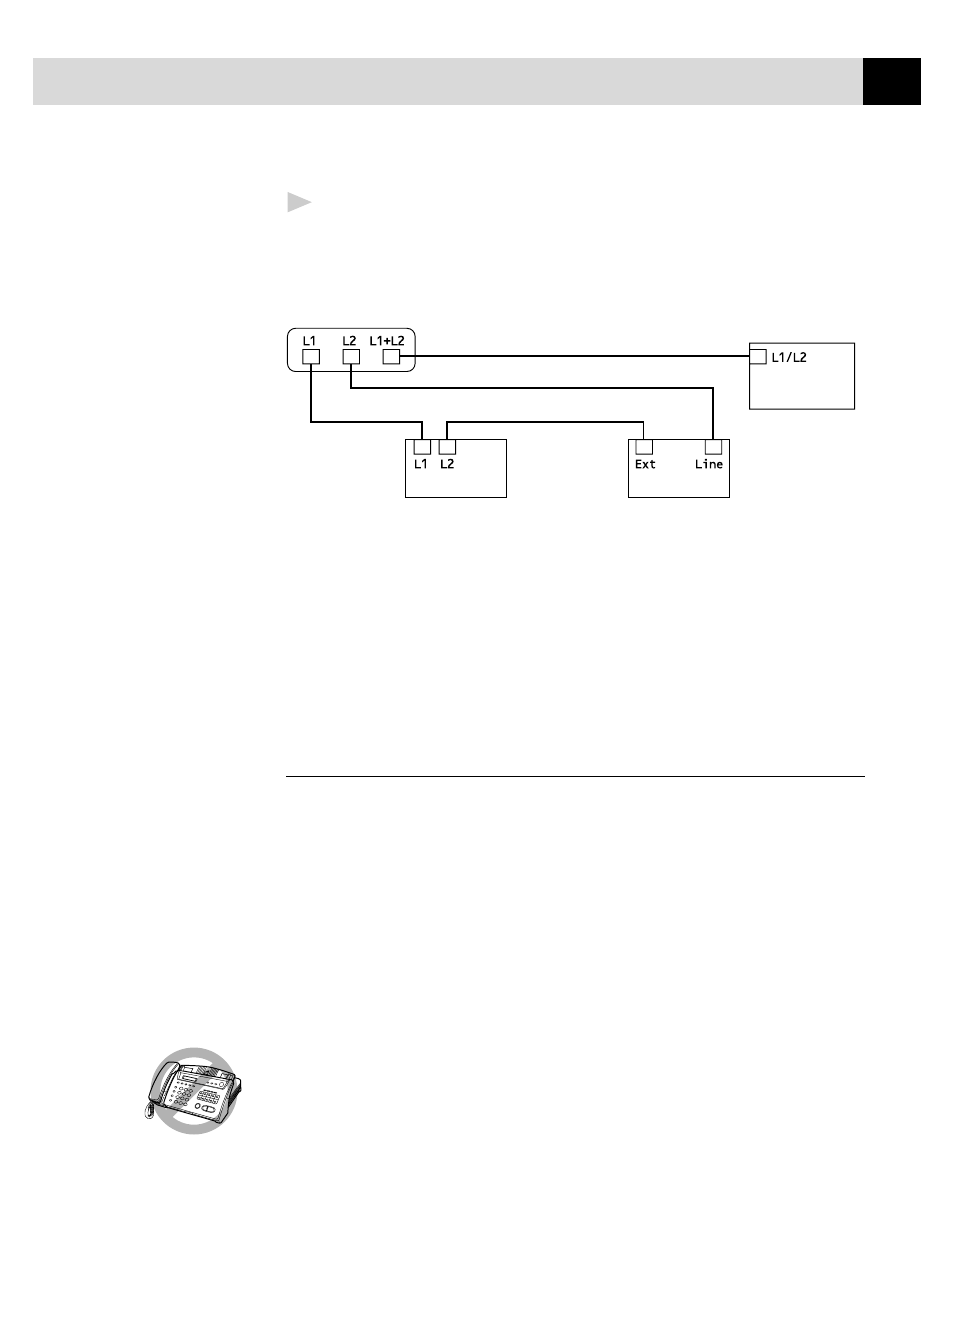 medium resolution of multi line connections pbx brother fax 355mc user manual page 27 123